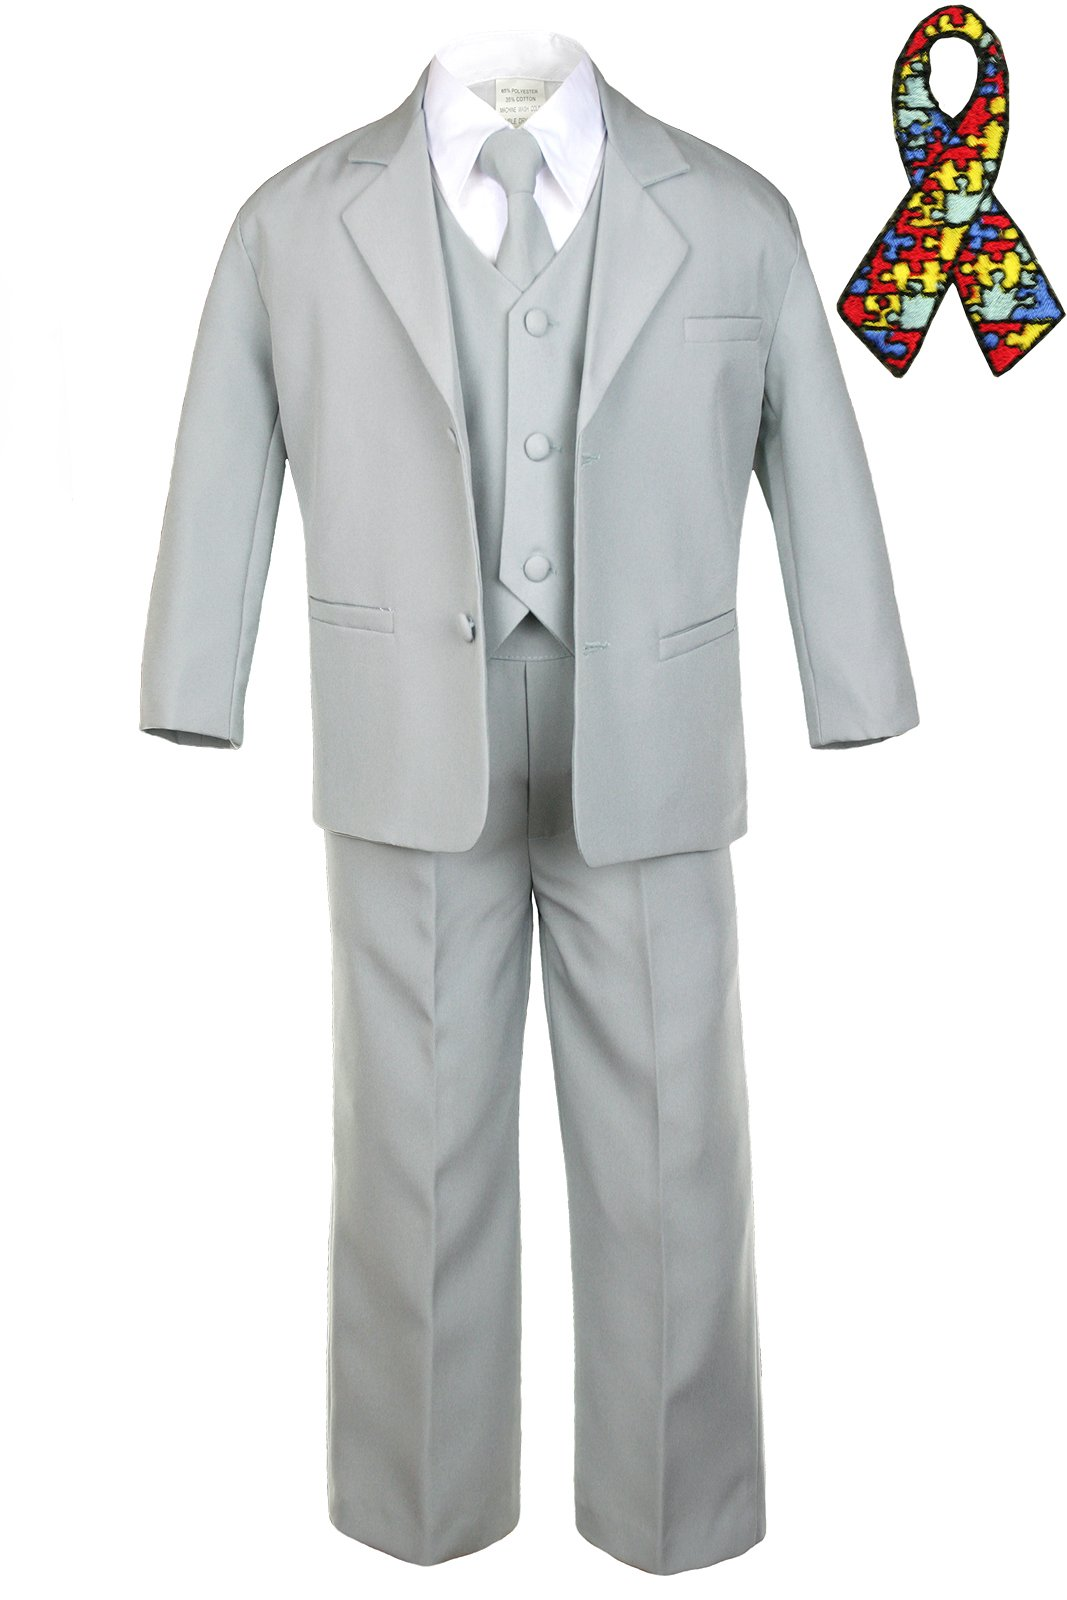 5pc Baby Boy Teen GRAY SUIT Autism Awareness Puzzle Ribbon Adhesive Patch (3T, Gray suit set Only)